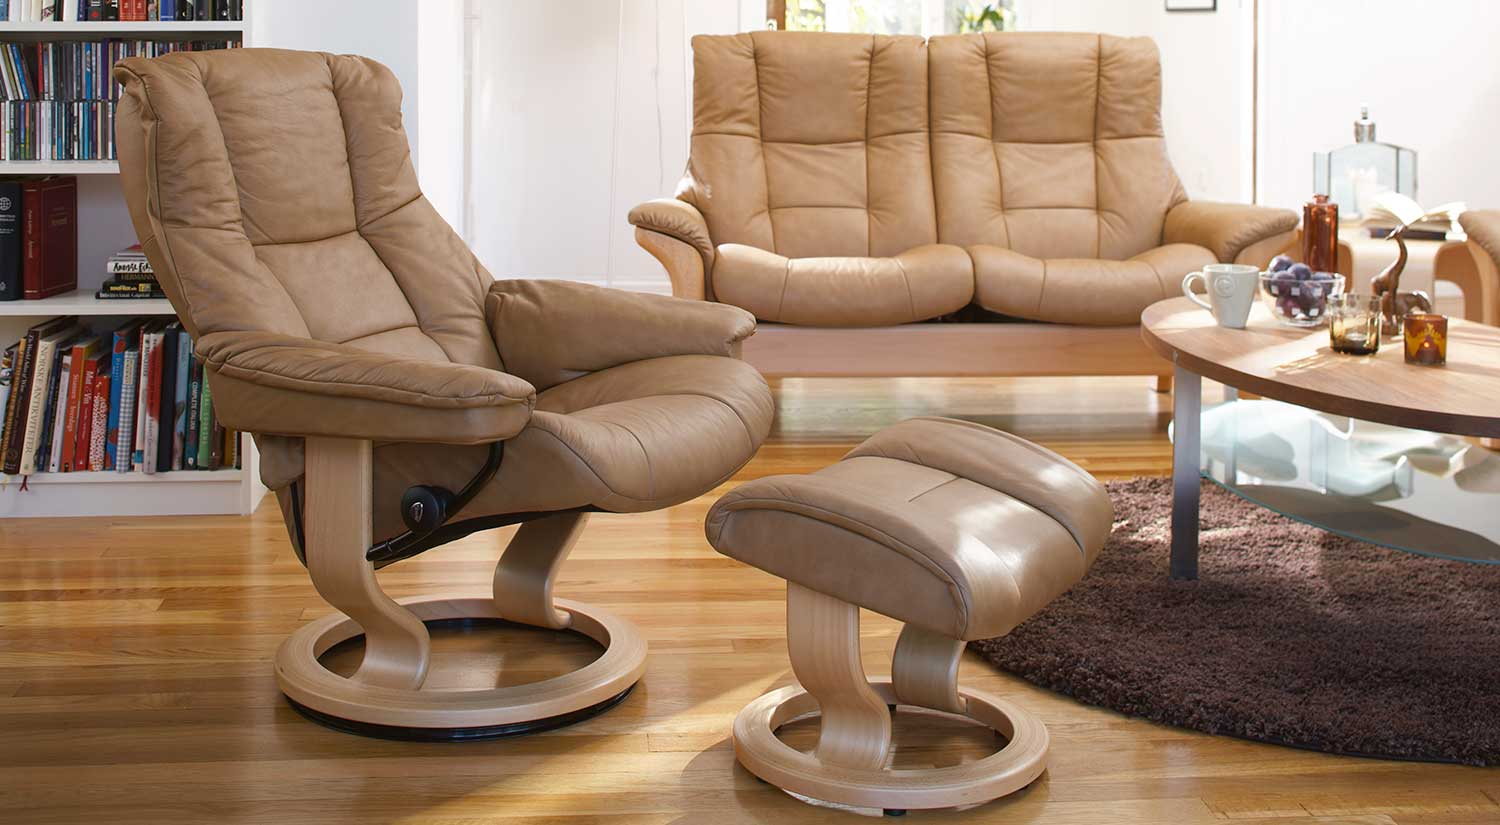 back pain, stressless, sofas, recliner